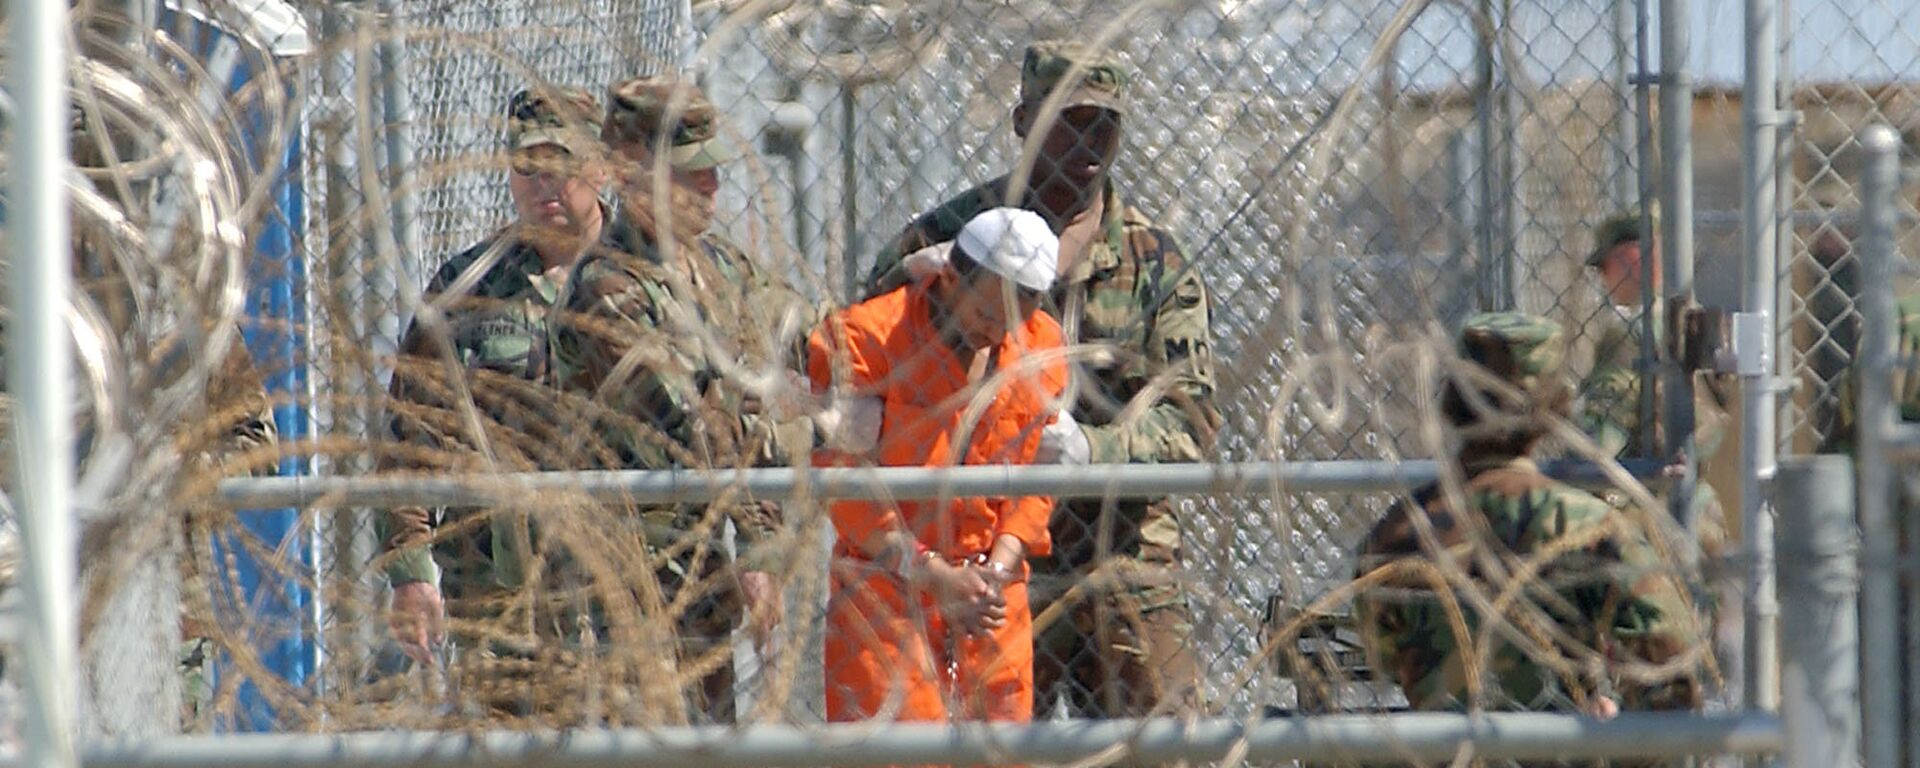 A detainee from Afghanistan is led by military police with his hands chained at Camp X-Ray at the U.S. Naval Base in Guantanamo Bay, Cuba, in this Feb. 2, 2002, file photo - Sputnik International, 1920, 09.09.2021